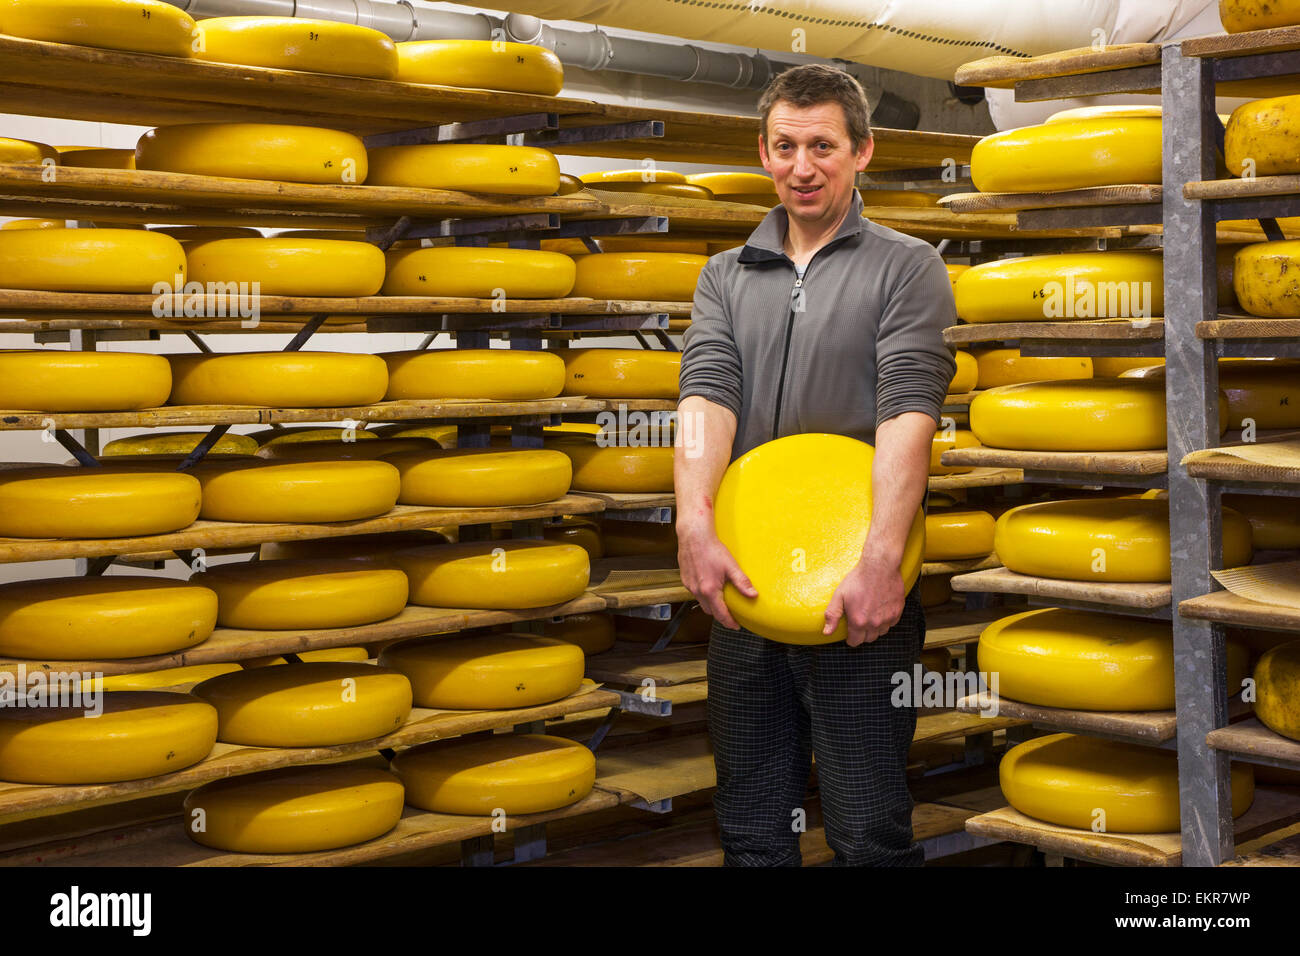 Cheese maker  with regional artisan wheel cheeses aging on shelves in cheese dairy - Stock Image